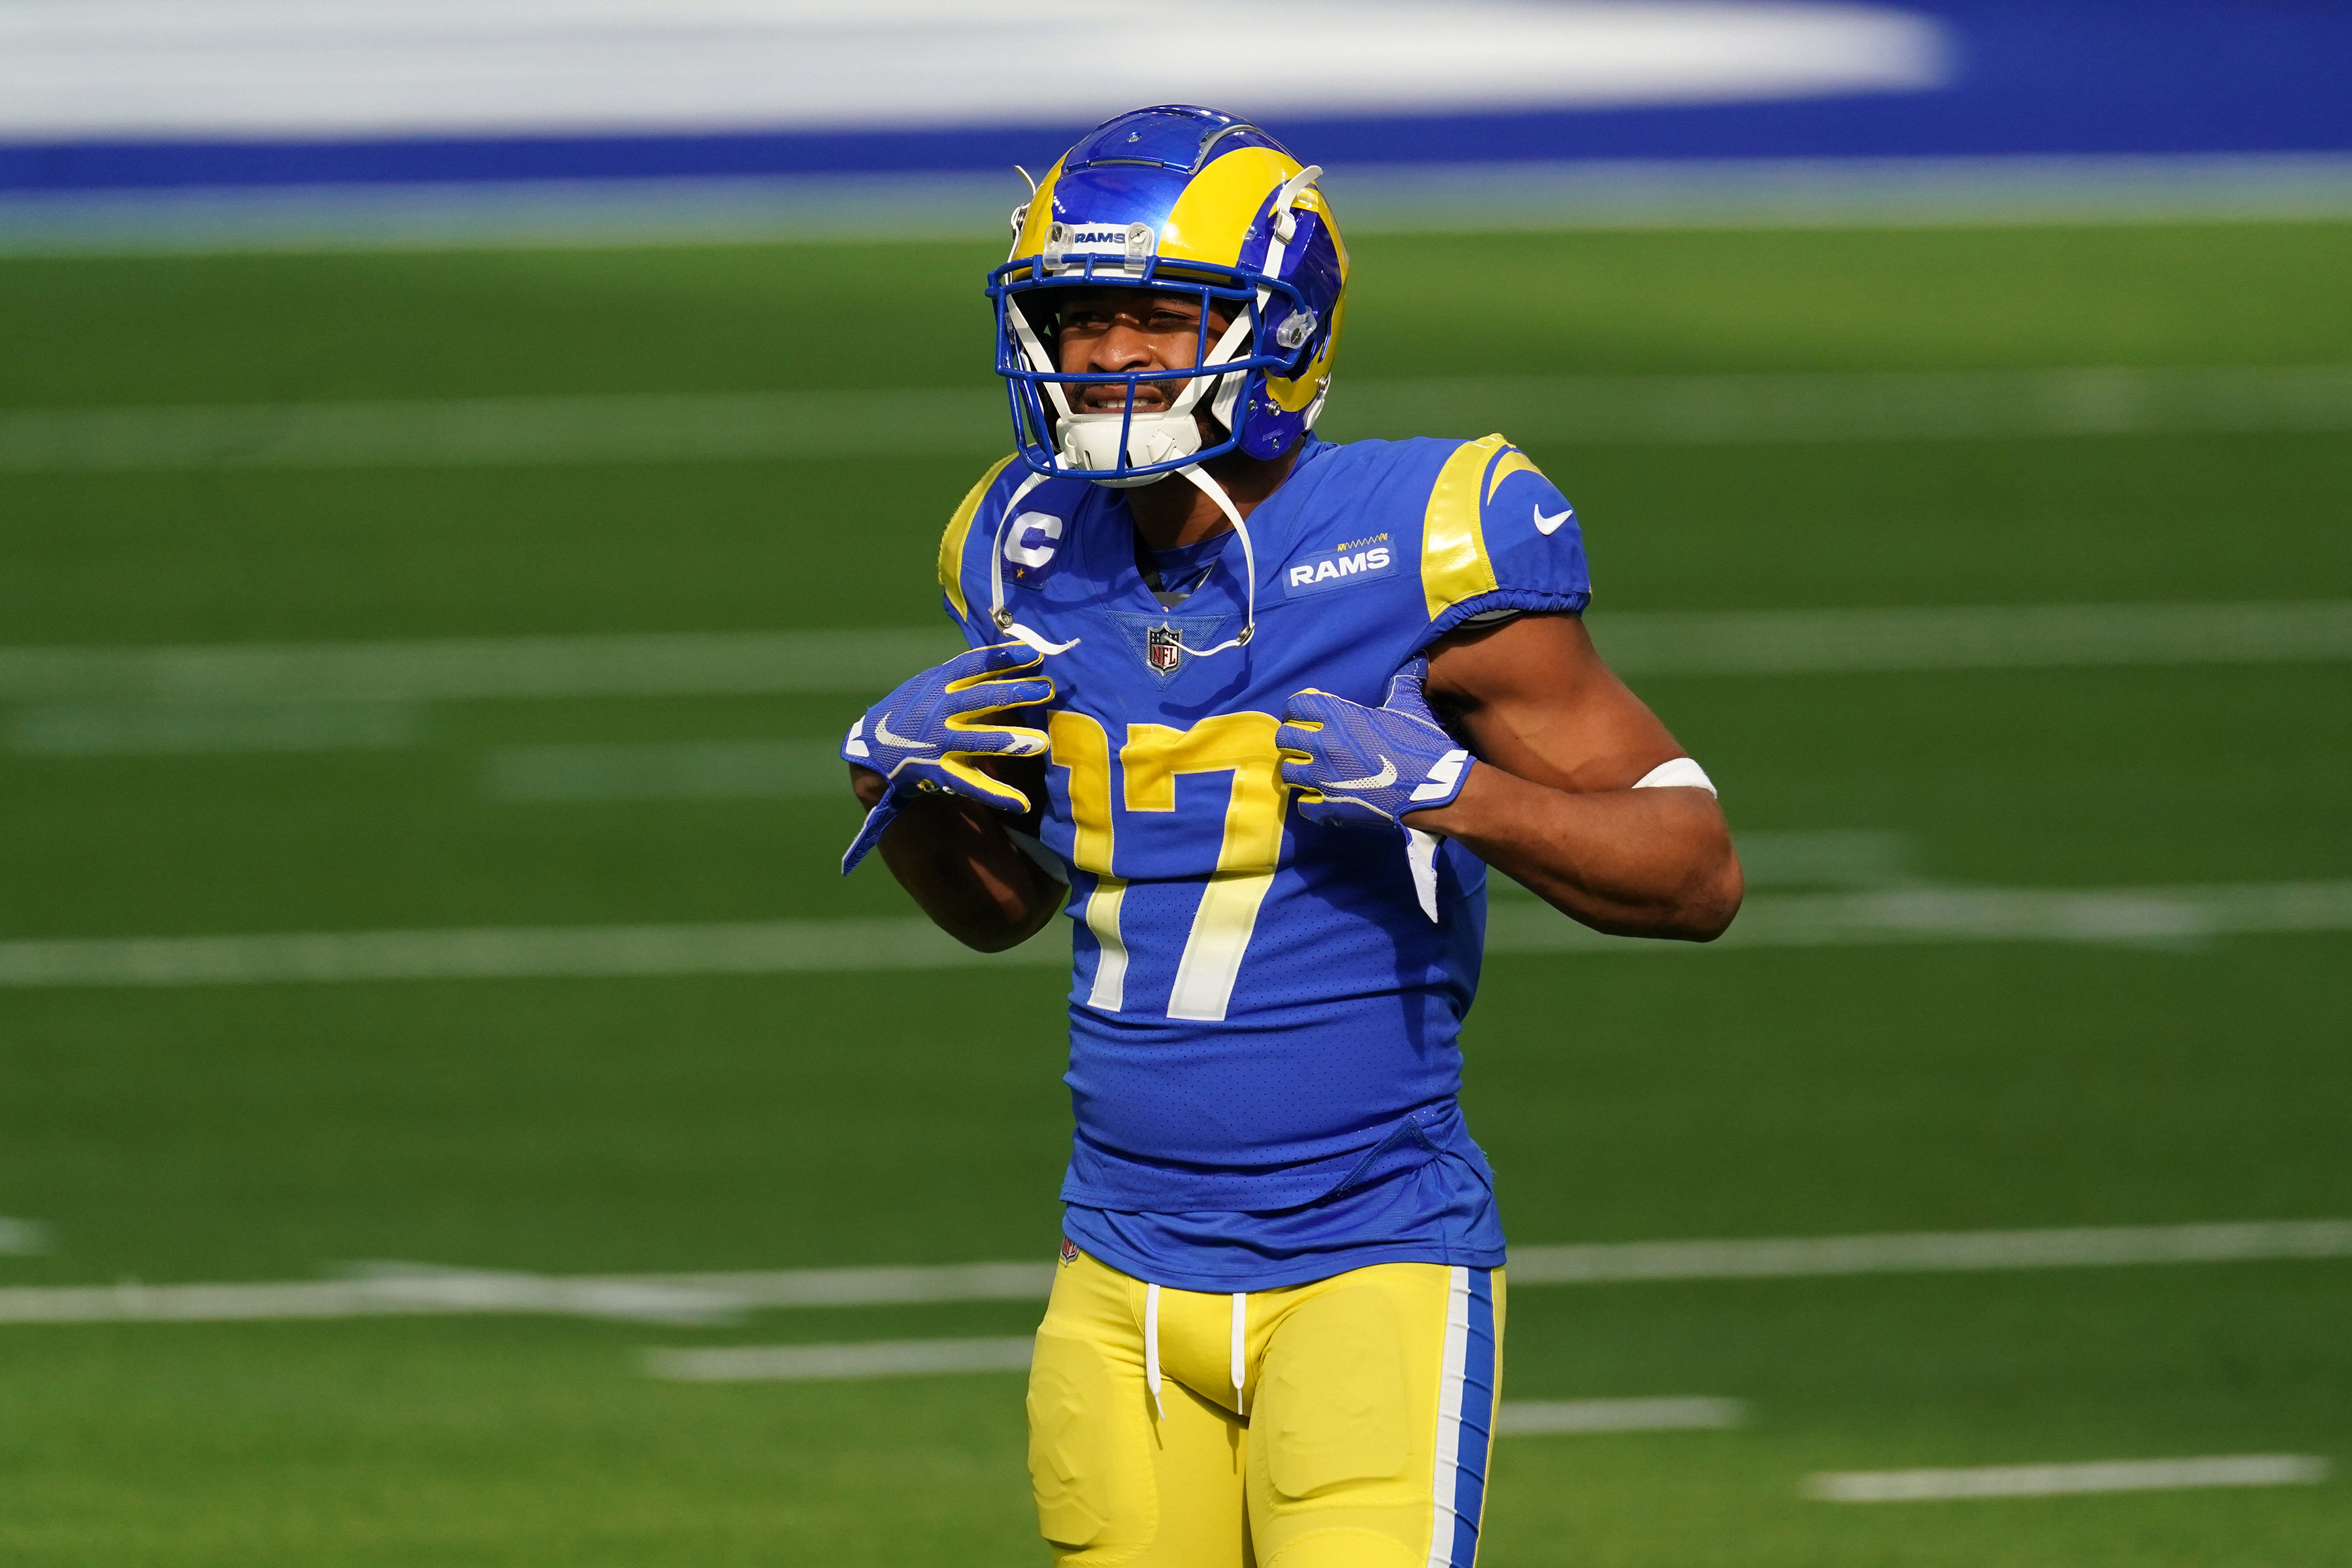 Los Angeles Rams wide receiver Robert Woods before the game against the San Francisco 49ers at SoFi Stadium.